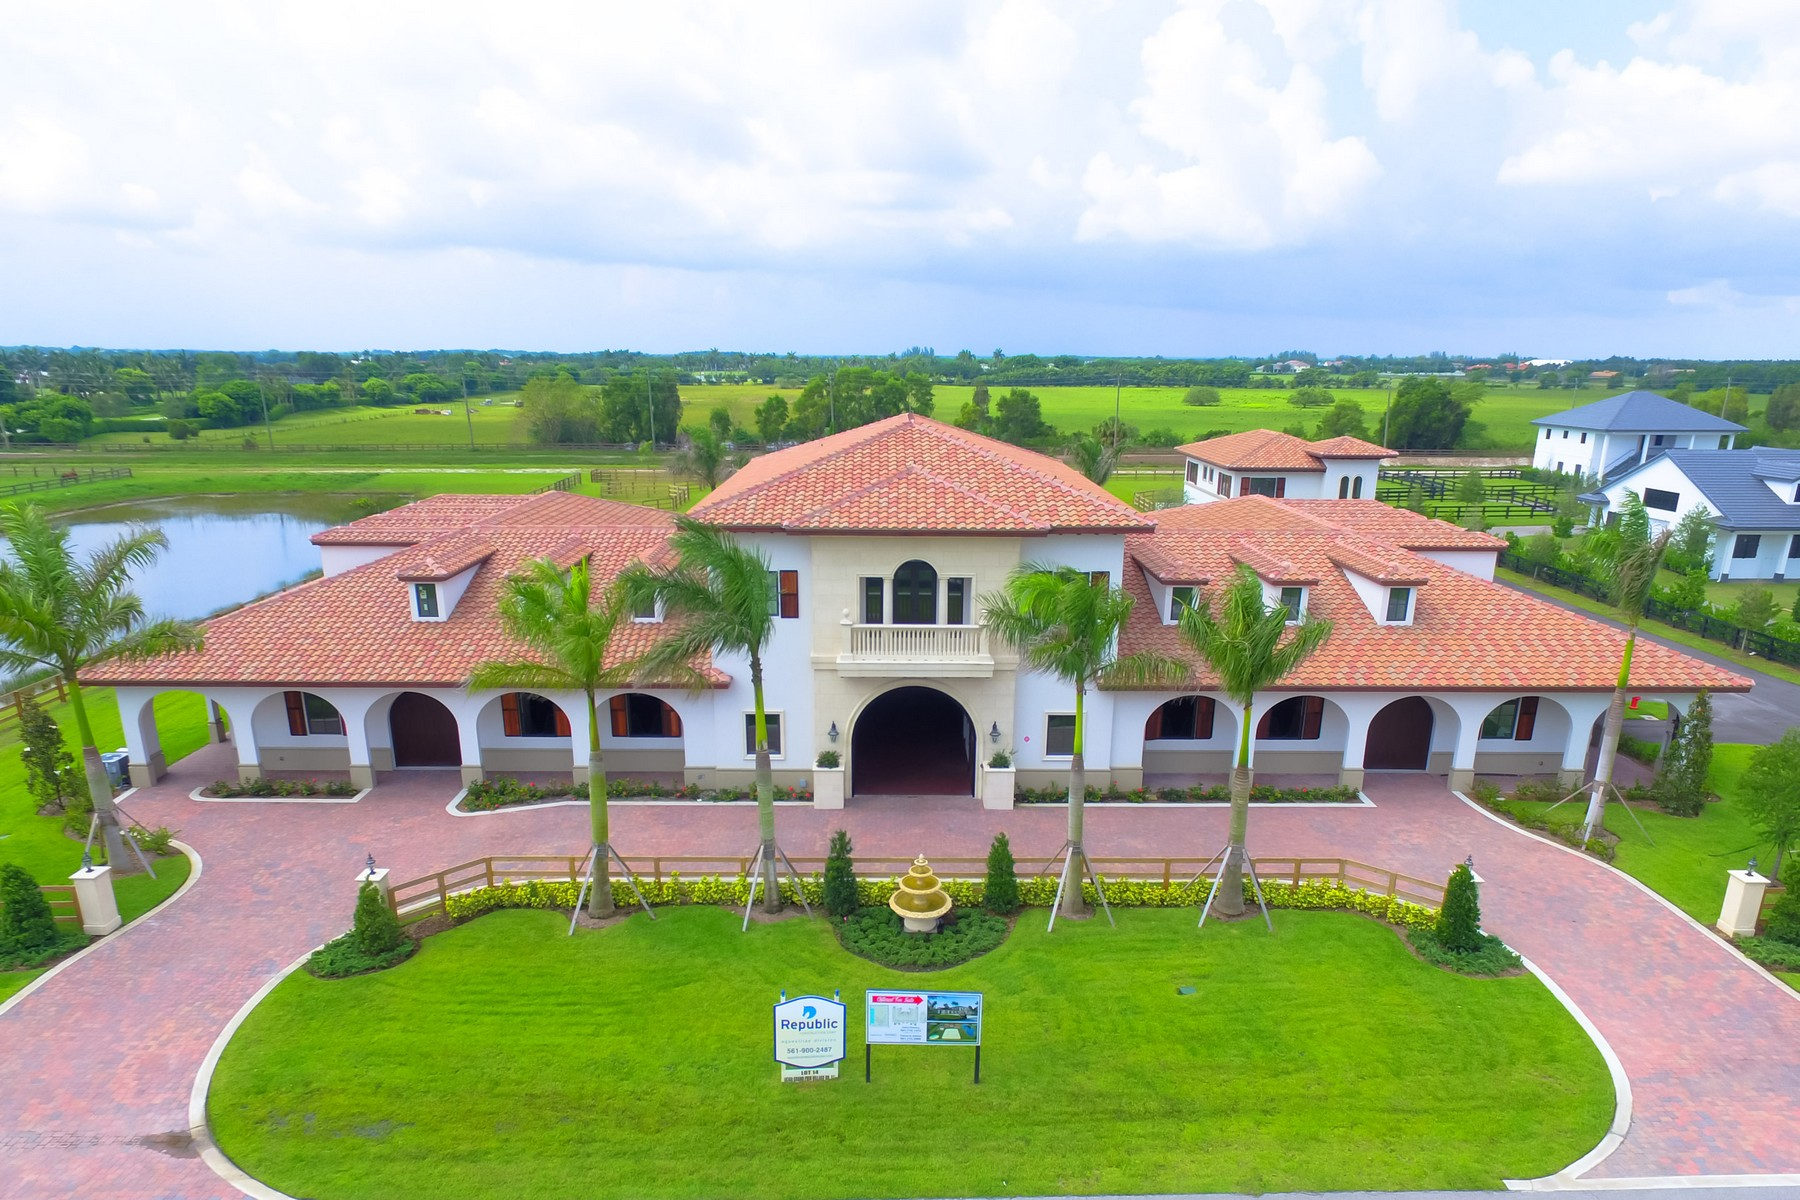 Ferme / Ranch / Plantation pour l Vente à Sanremo Farm 14740 Grand Prix Village Drive Wellington, Florida, 33414 États-Unis